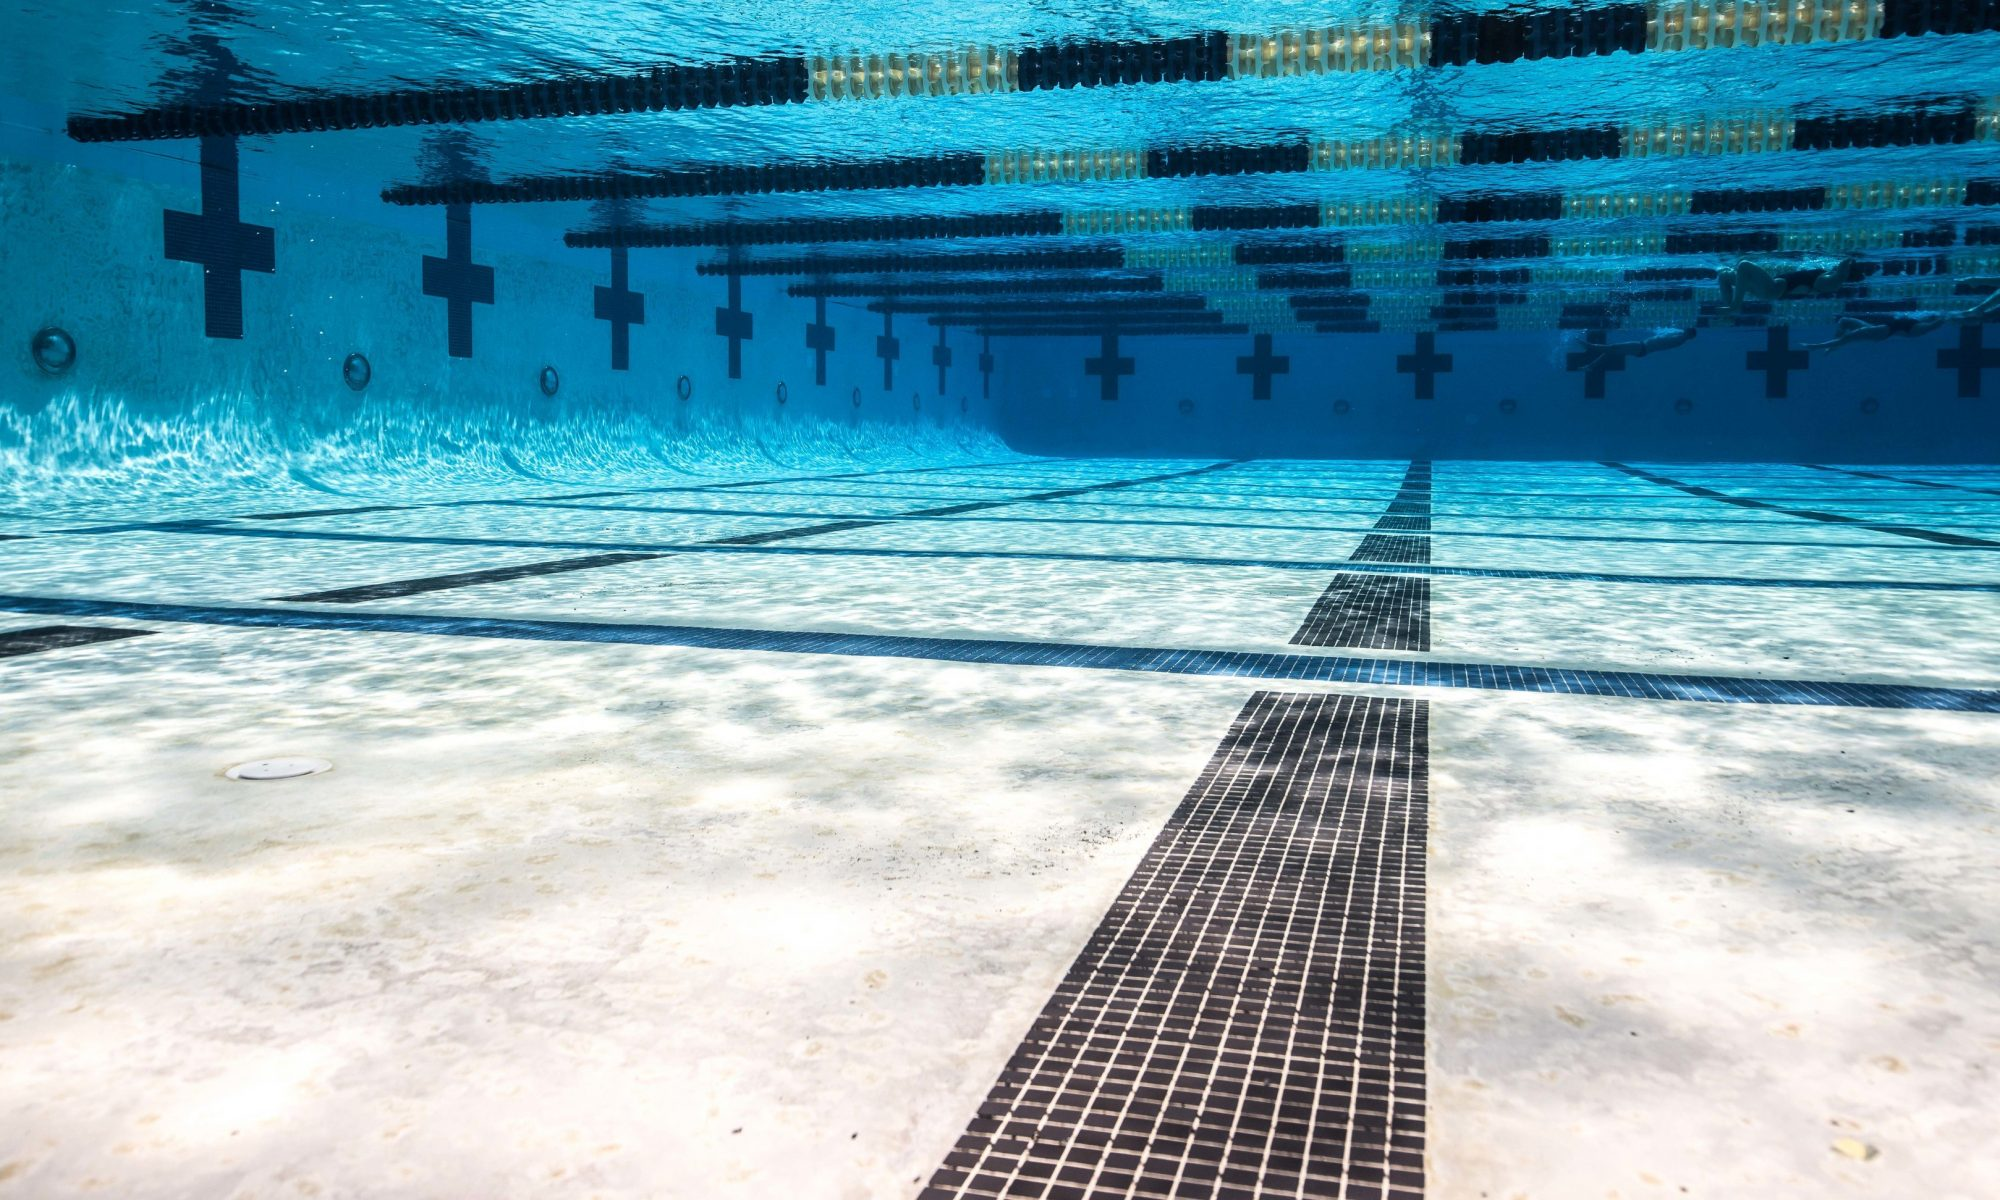 Underwater Pic Of Young Woman Stock Image - Image of water